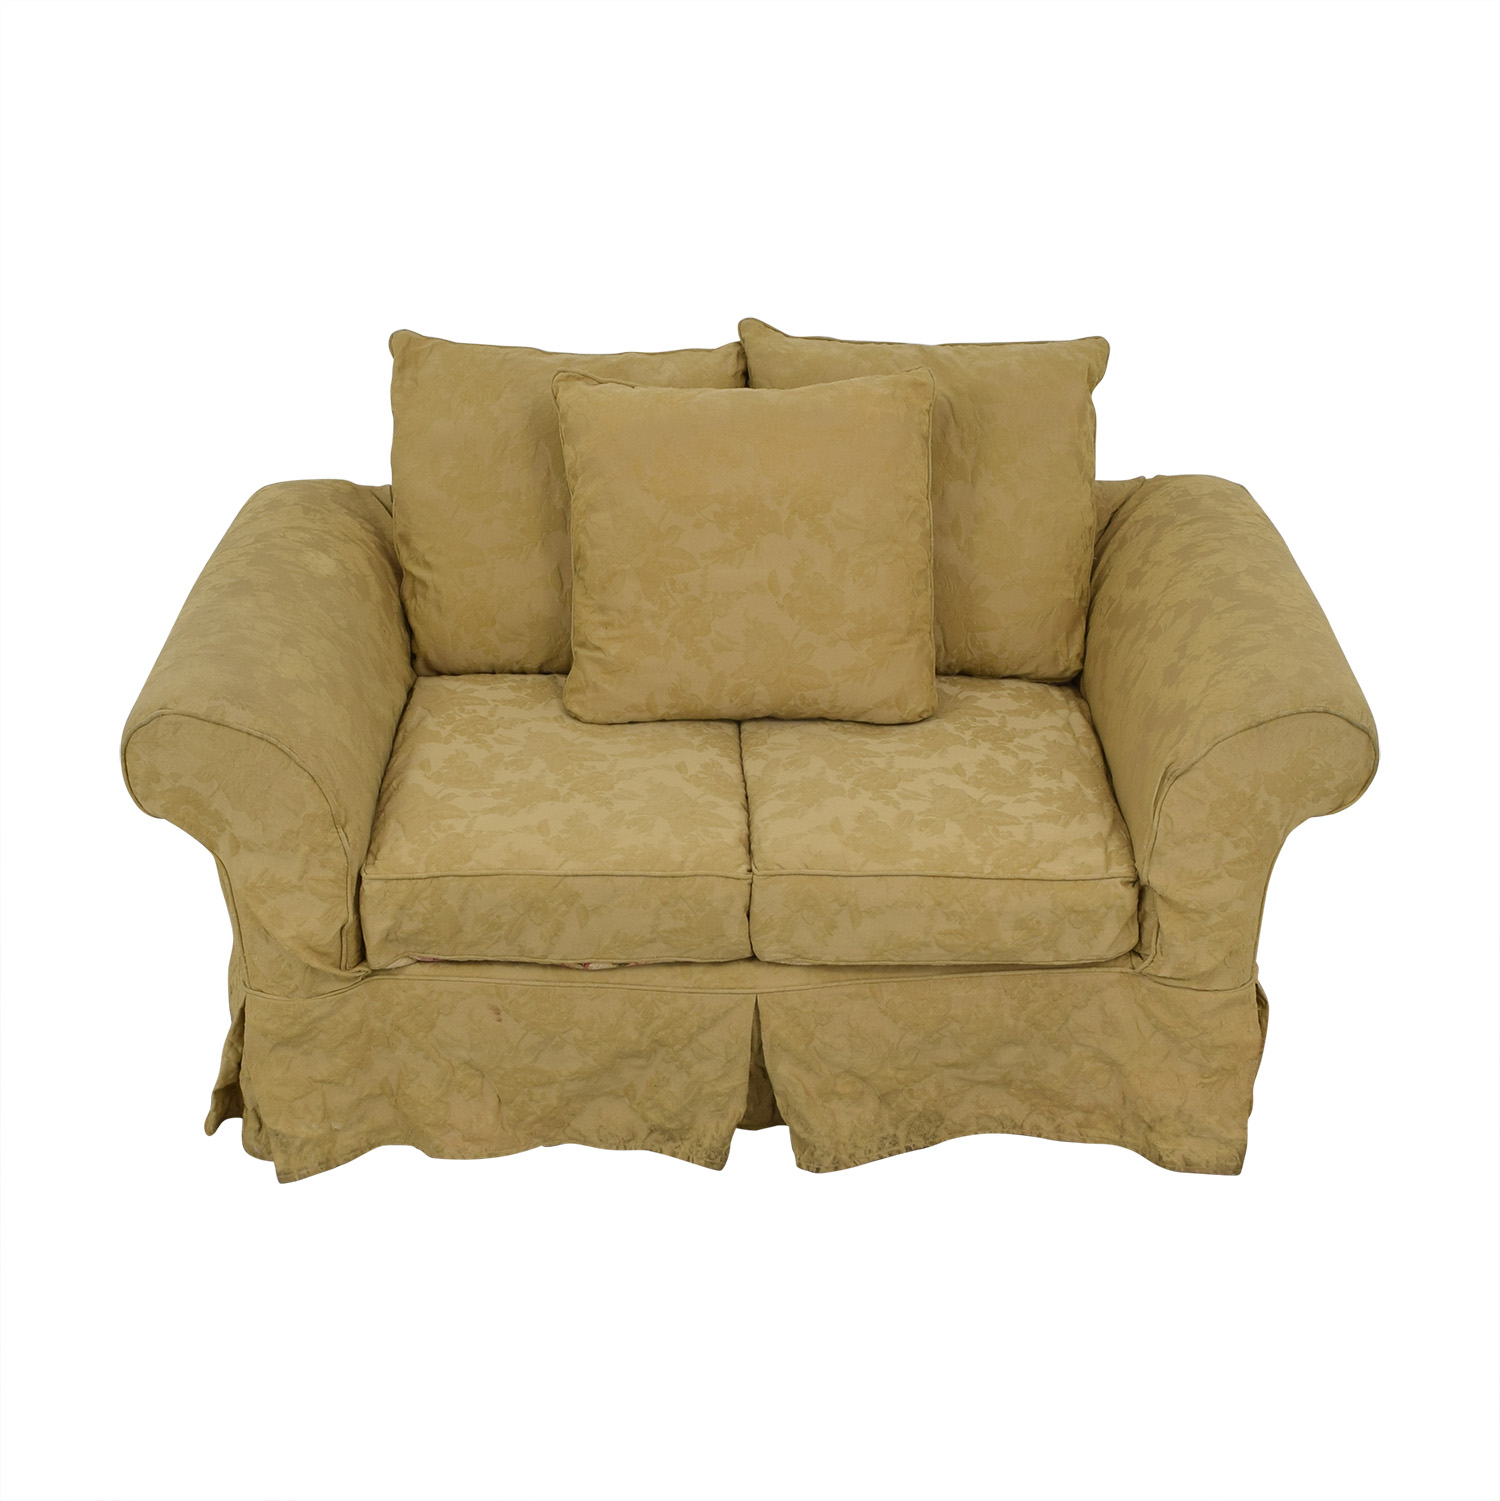 Domain Domain French Country-Style Loveseat Sofas